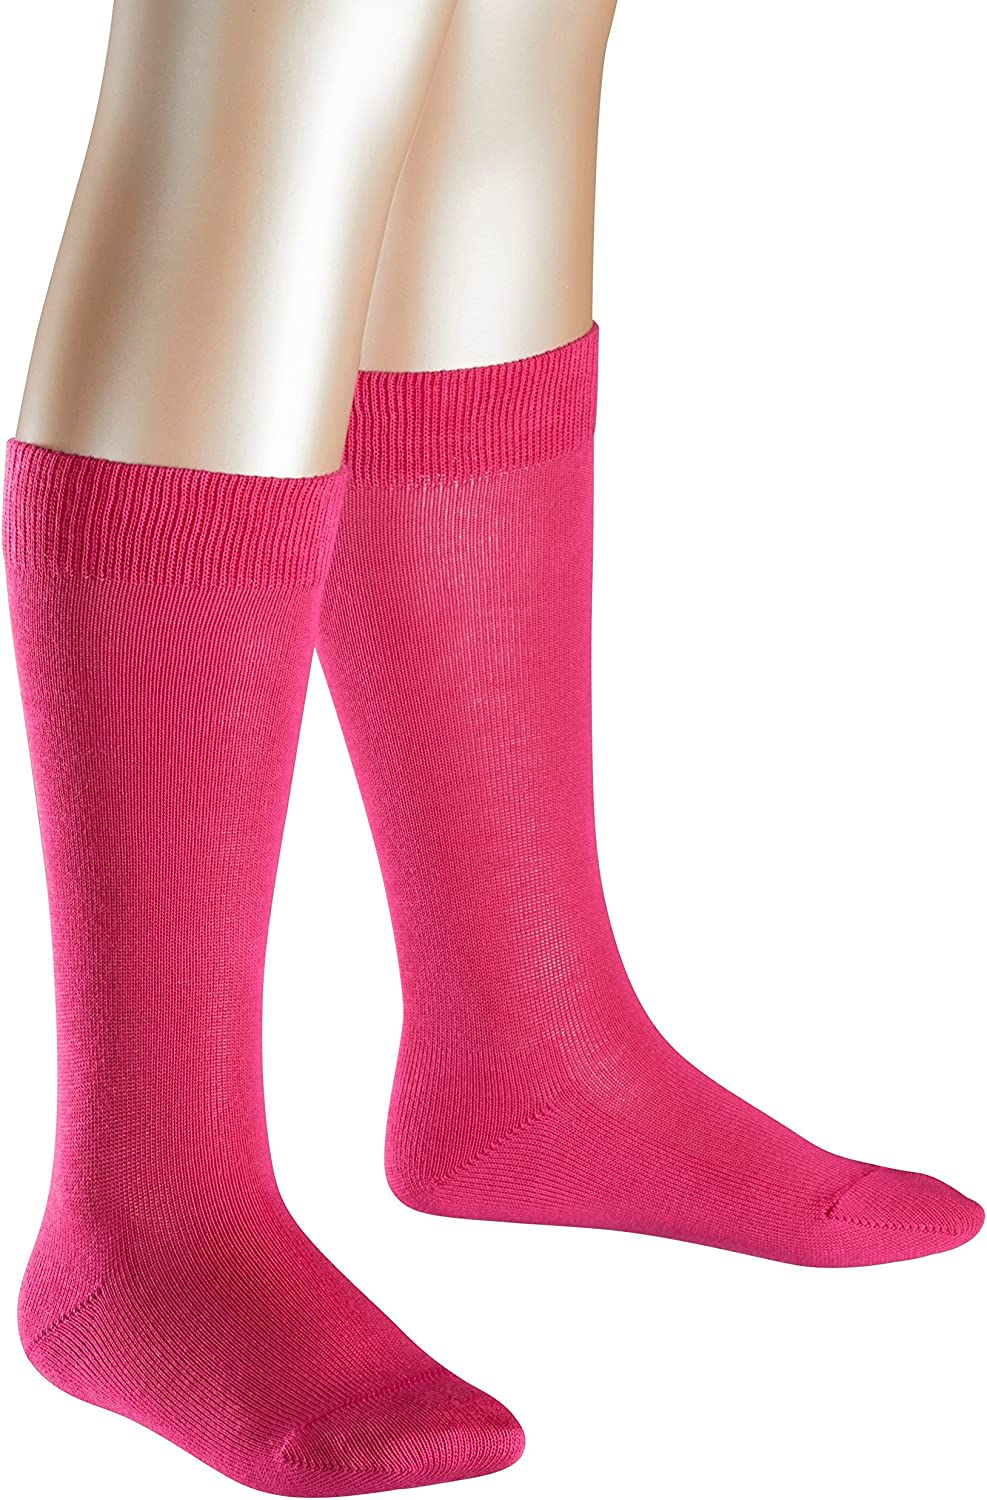 ideal for boots EU 23-42 durable UK sizes 6 1 Pair 94/% Cotton FALKE Kids Family Knee-Highs Multiple Colours - 8 Year-round quality kid